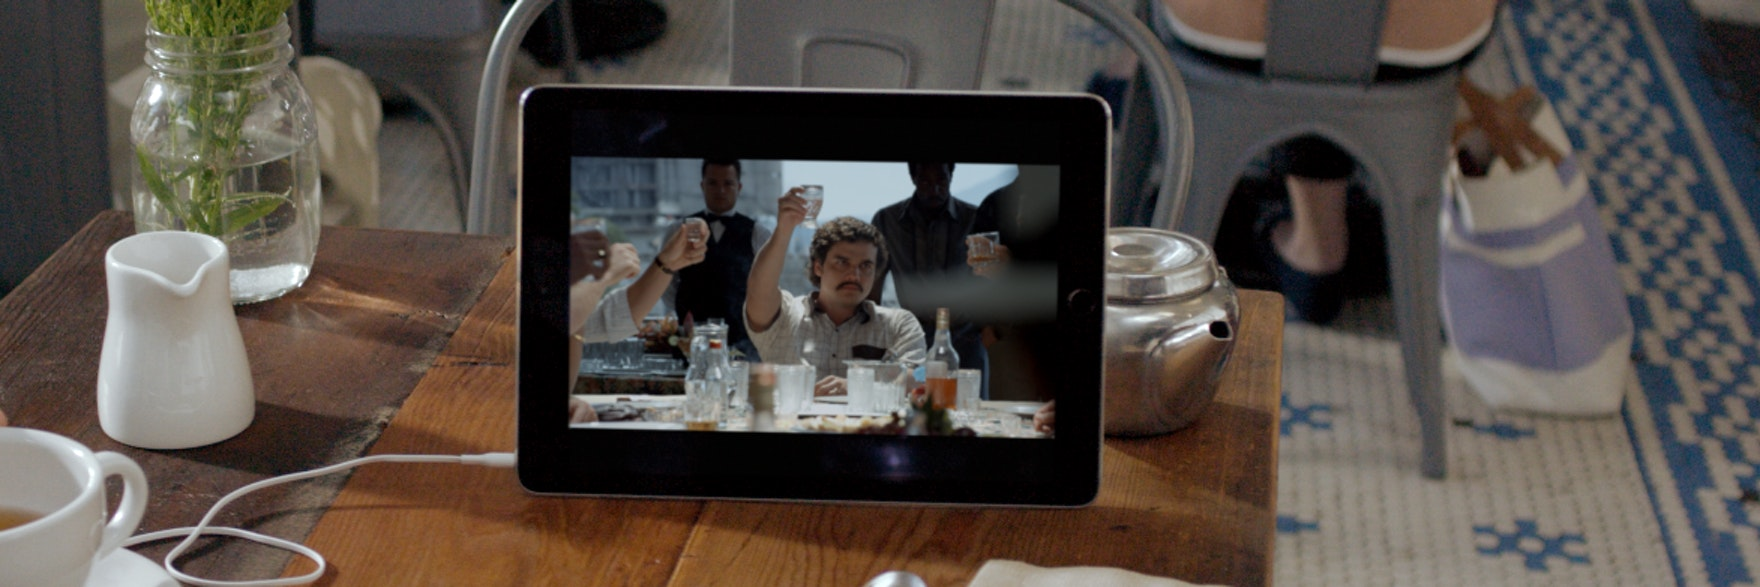 The Netflix original series 'Narcos' plays on an iPad in this publicity shot released by Netflix.